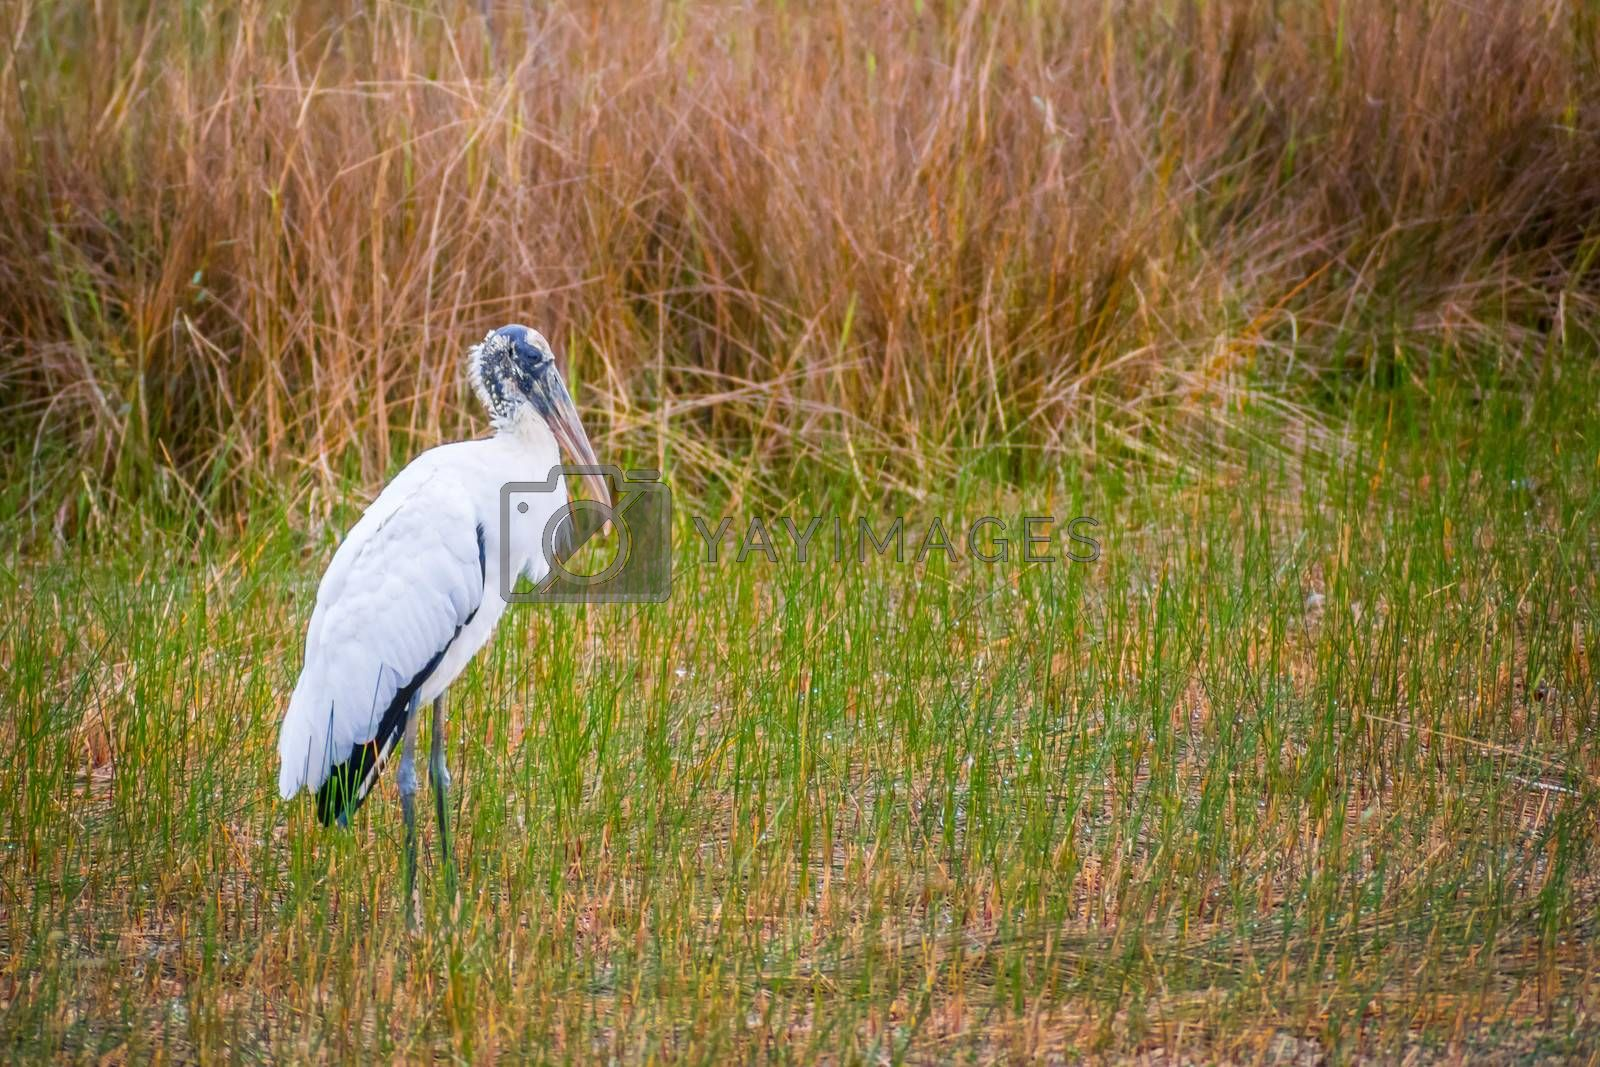 A Black Headed Ibis in Everglades National Park, Florida by Cheri Alguire